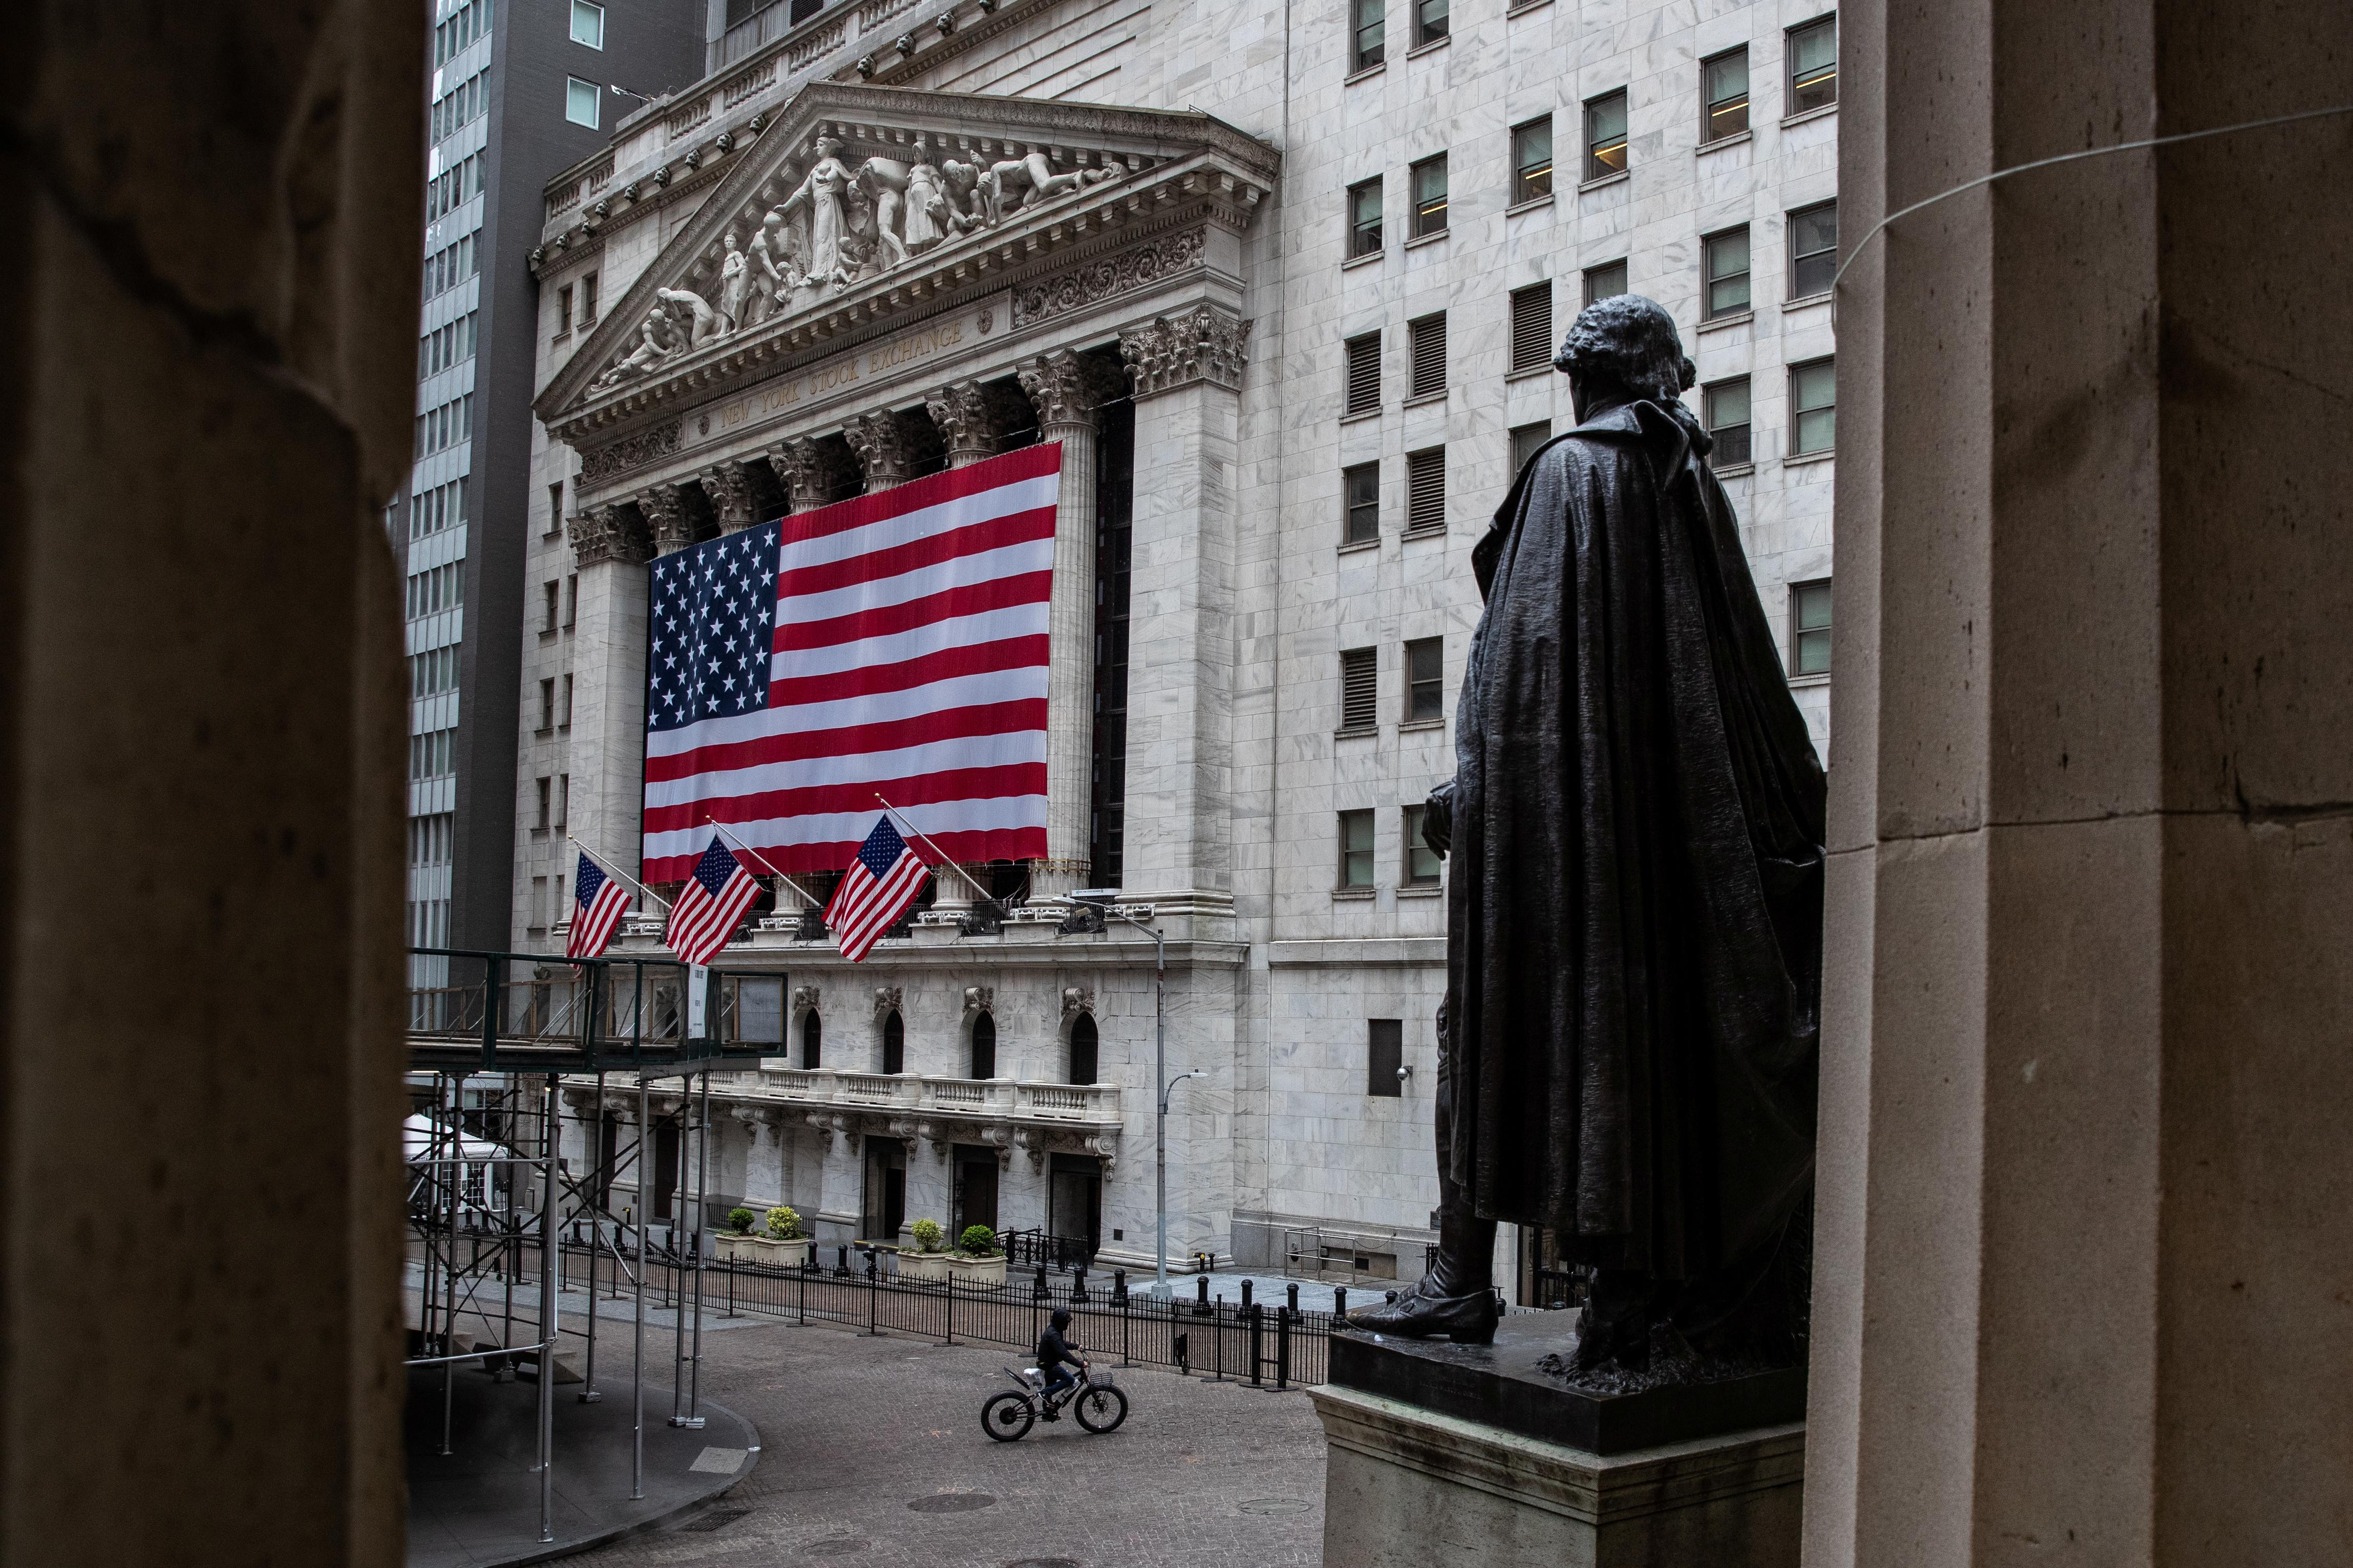 The New York Stock Exchange (NYSE) is seen in the financial district of lower Manhattan during the outbreak of the coronavirus disease (COVID-19) in New York City, U.S., April 26, 2020. Jeenah Moon